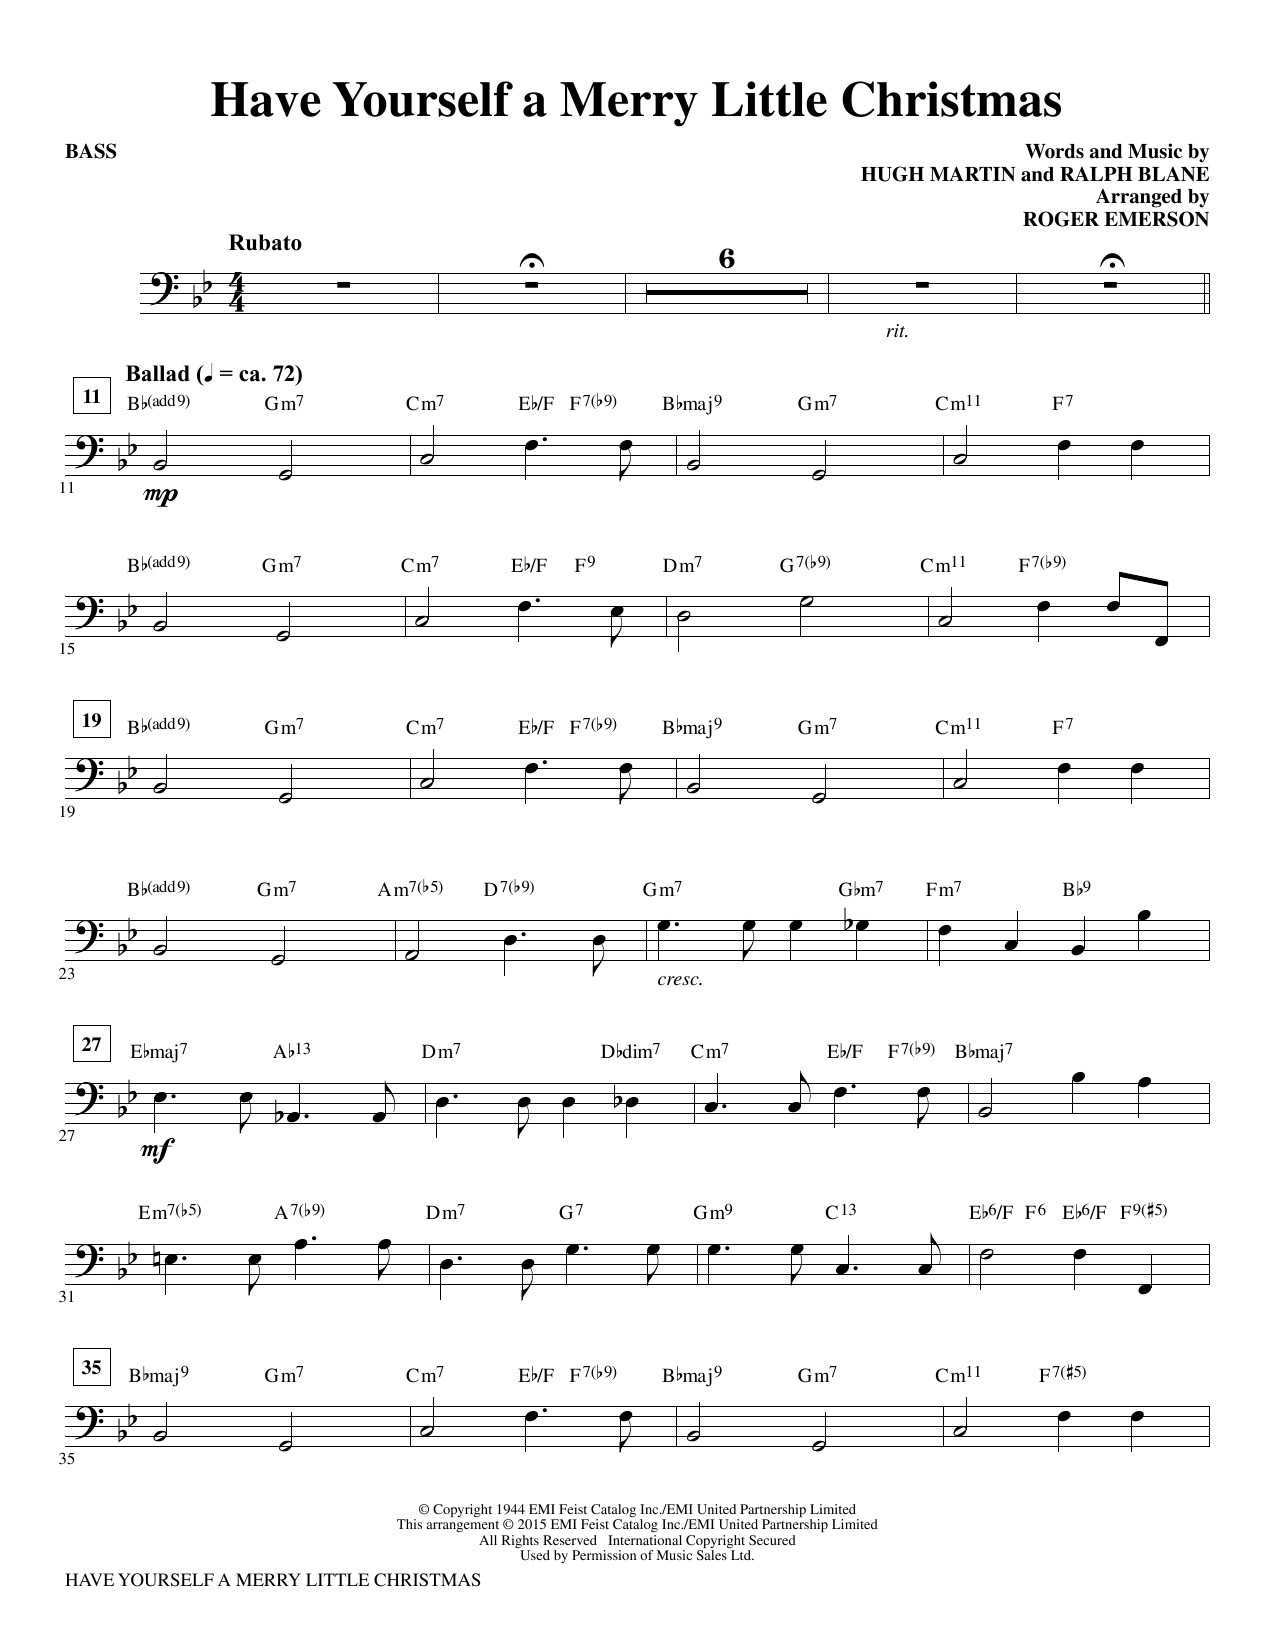 Have Yourself A Merry Little Christmas Lead Sheet.Have Yourself A Merry Little Christmas Bass By Roger Emerson Choir Instrumental Pak Digital Sheet Music